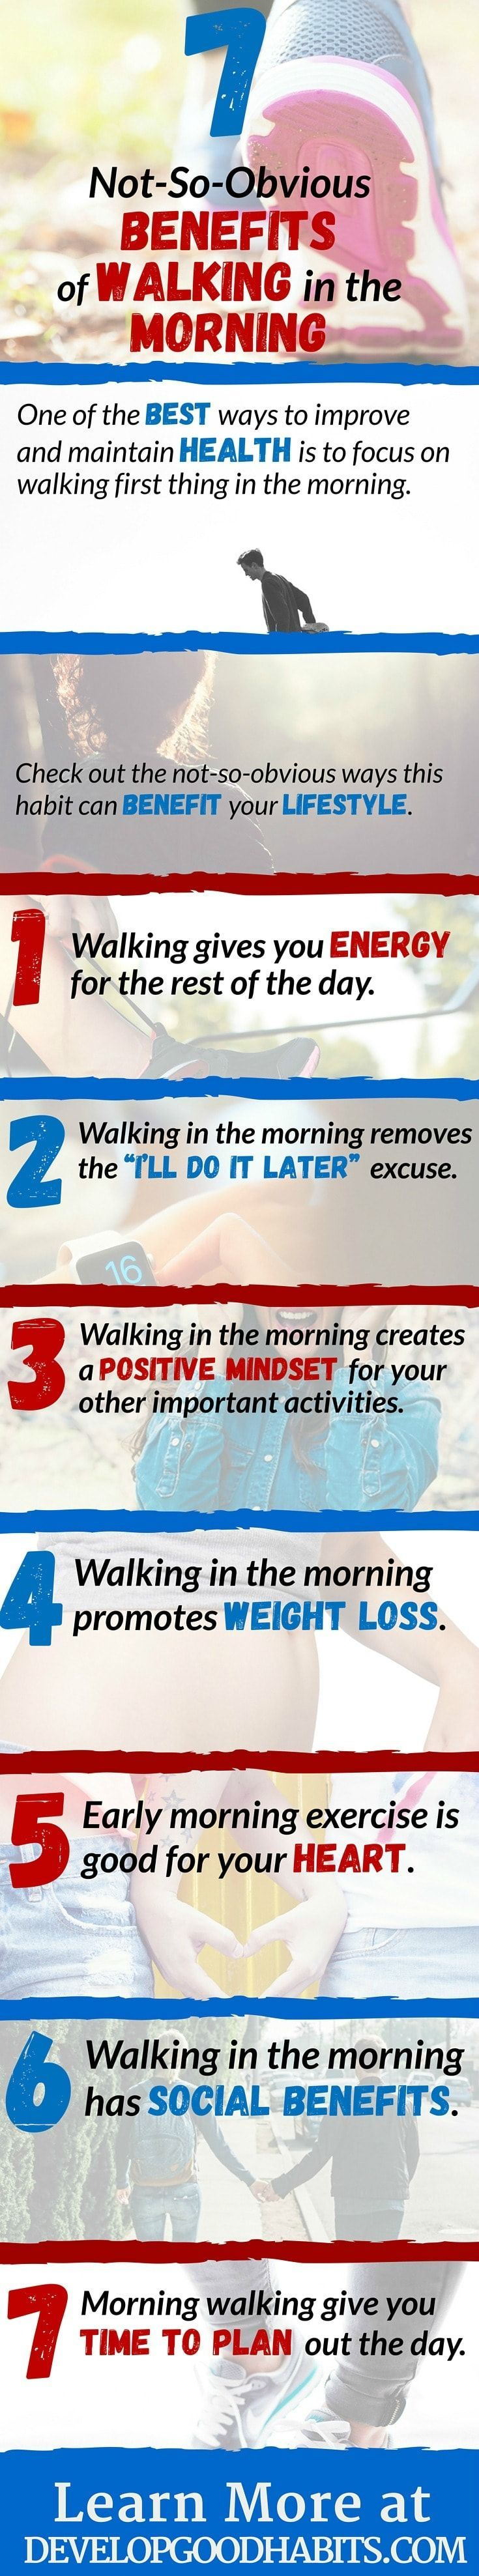 Benefits of walking in the morning. MORE reasons to think about making a morning walk part of your daily routine.